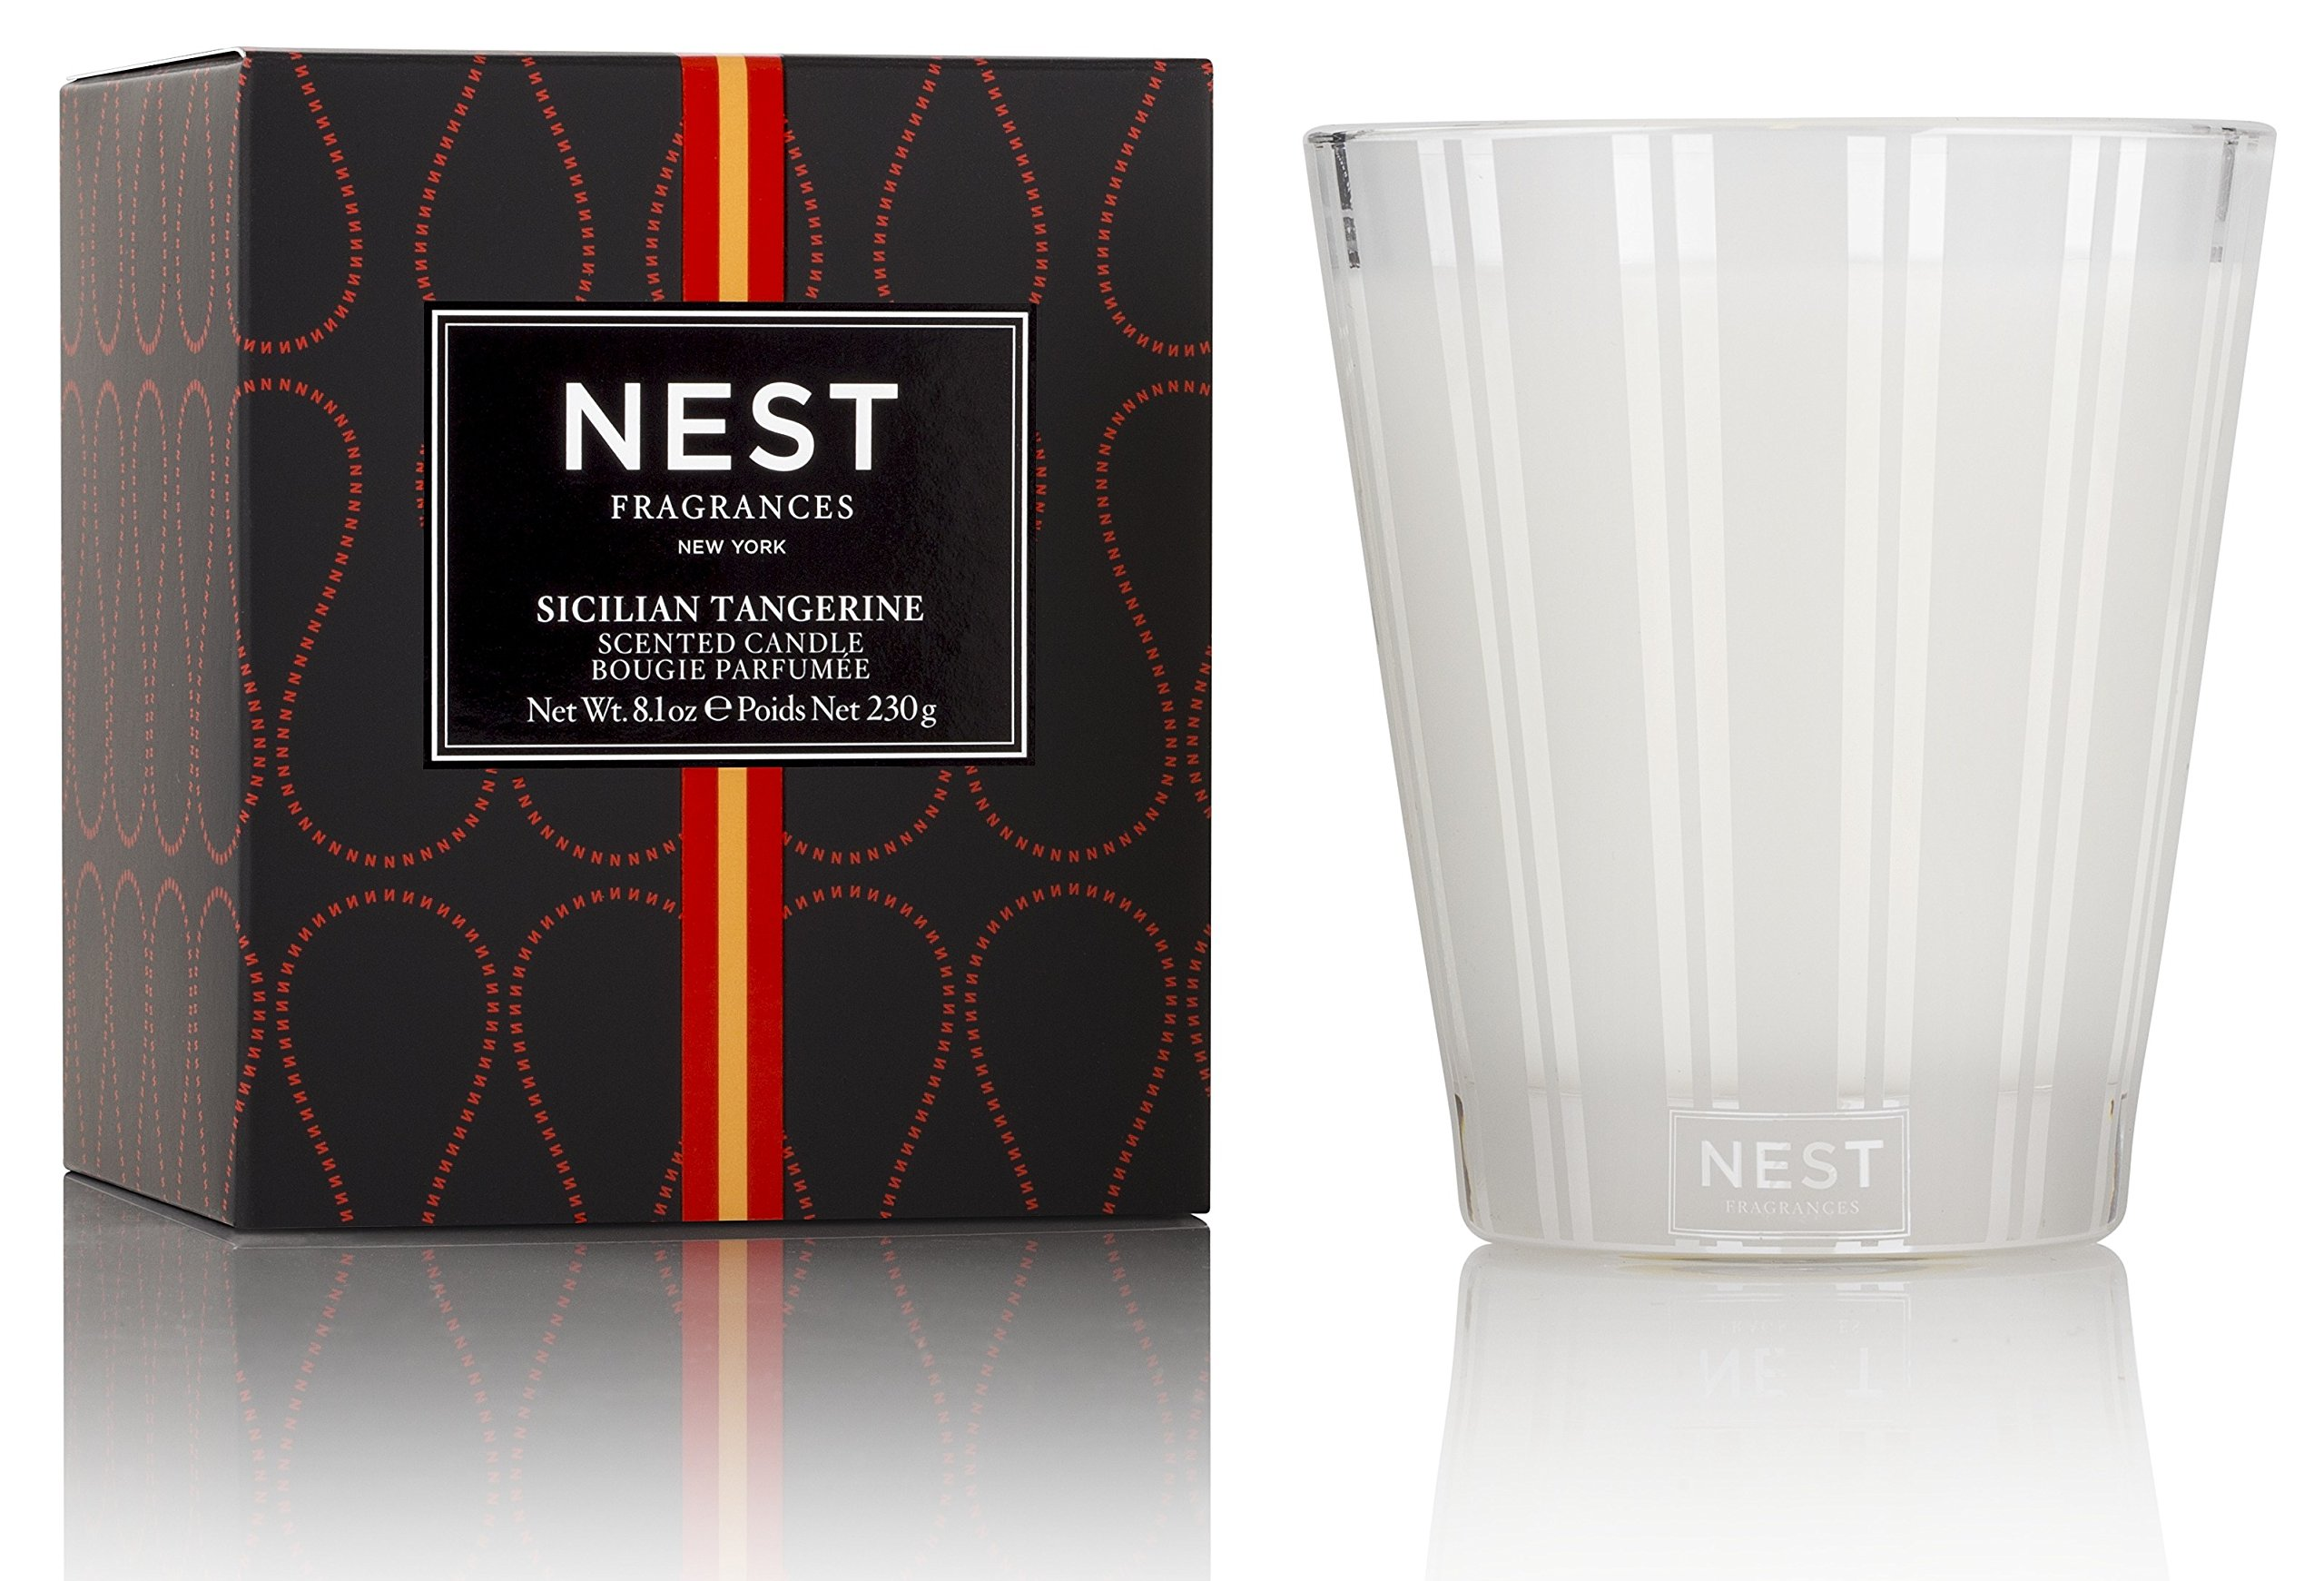 NEST Fragrances NEST01ST002 Classic Candle- Sicilian Tangerine, 8.1 oz